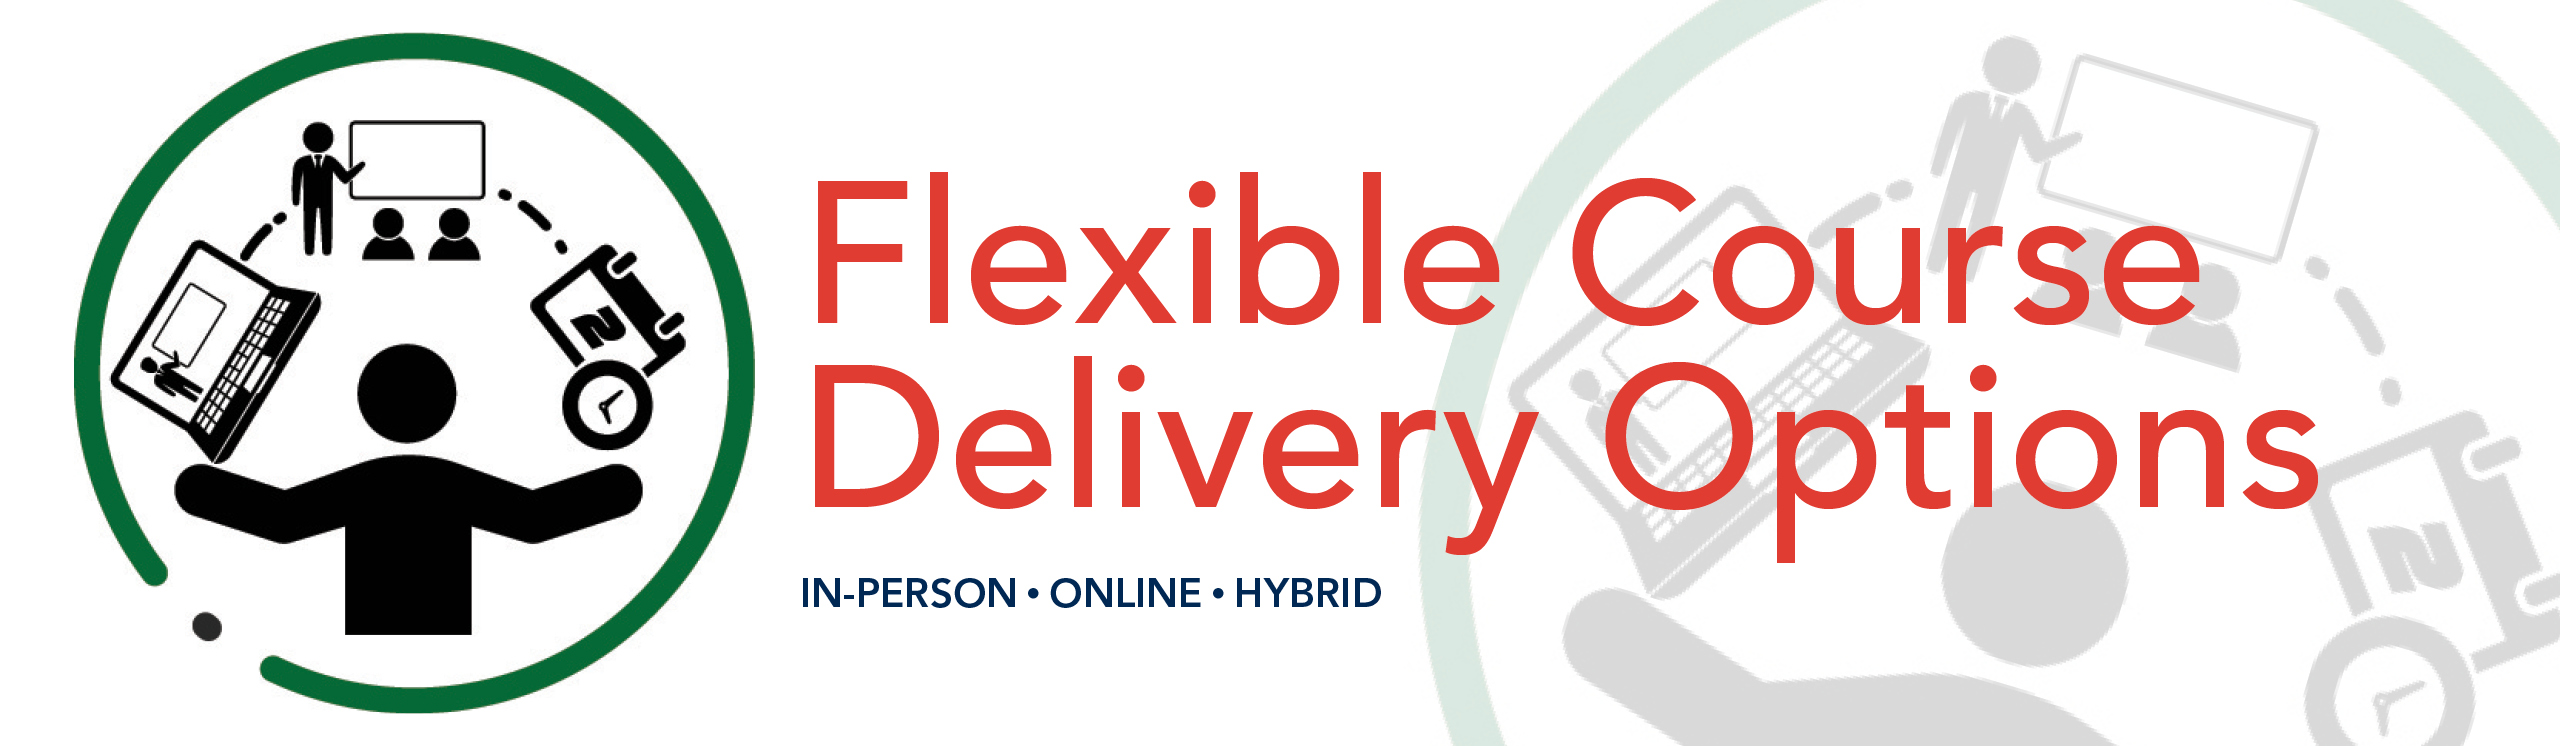 Course Delivery Formats